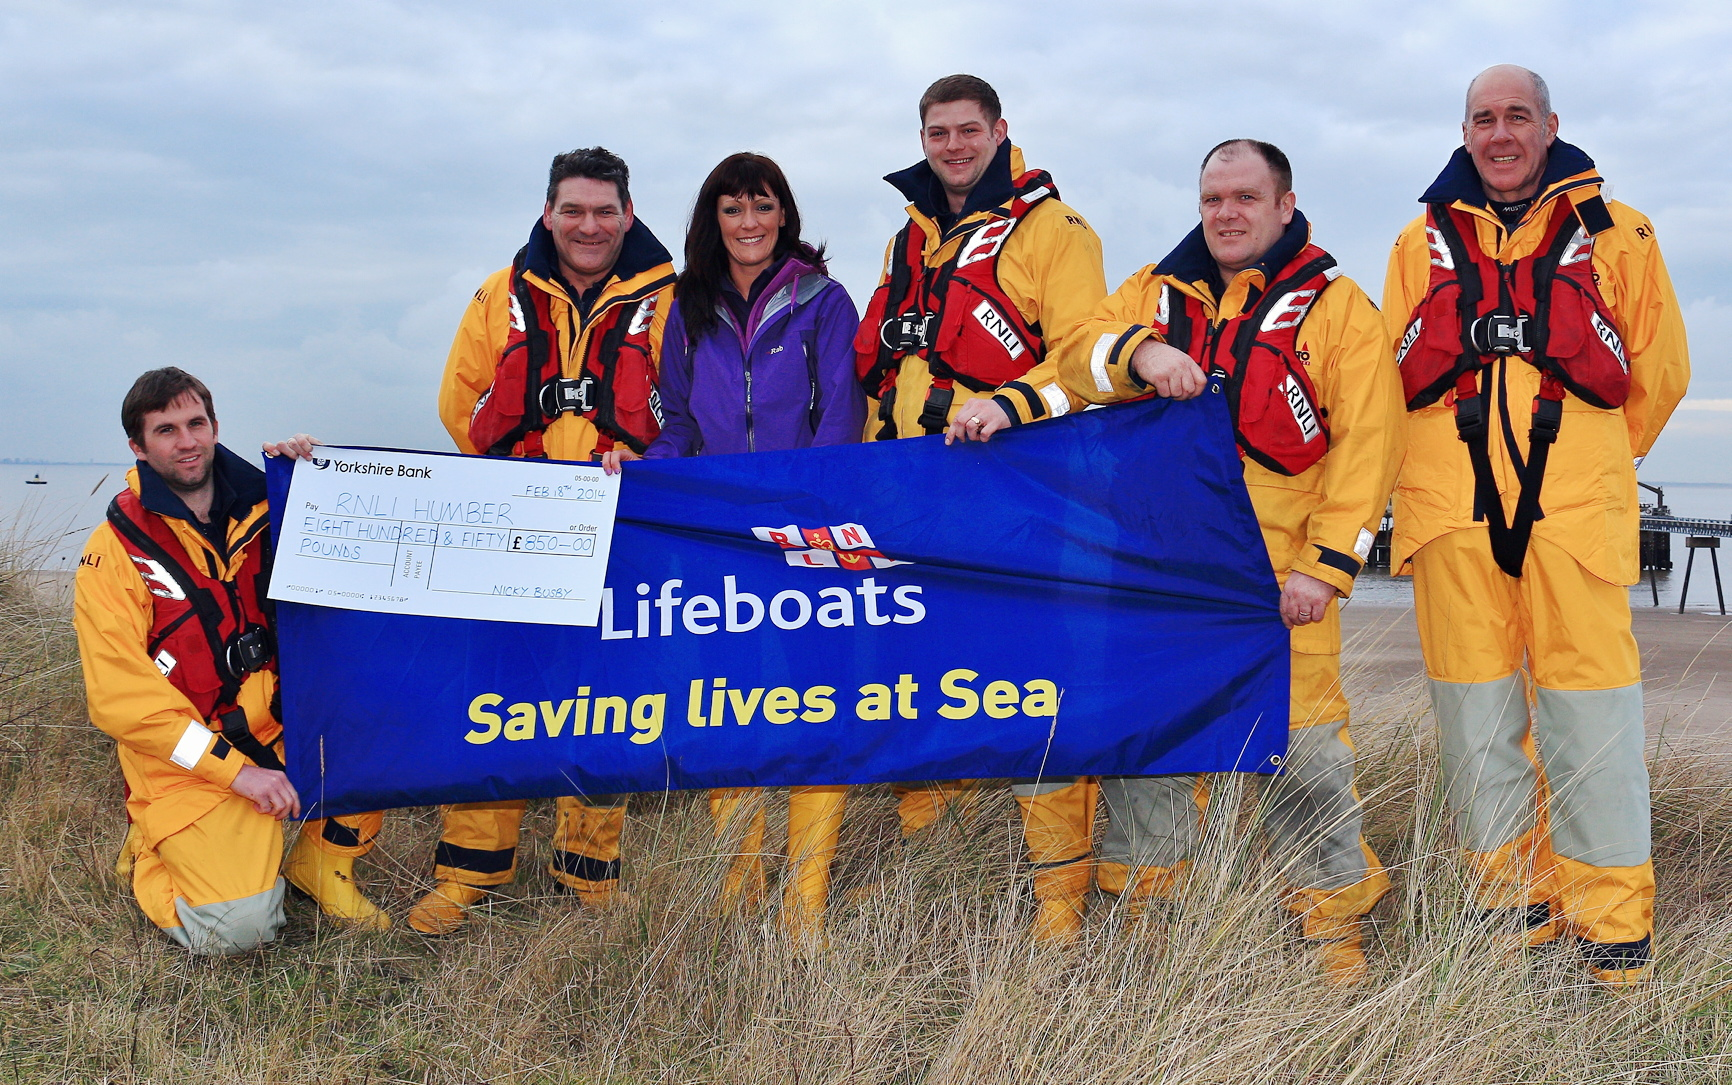 Fundraiser Nicky Busby presenting the cheque to the RNLI Humber crew. Picture by John Earnshaw